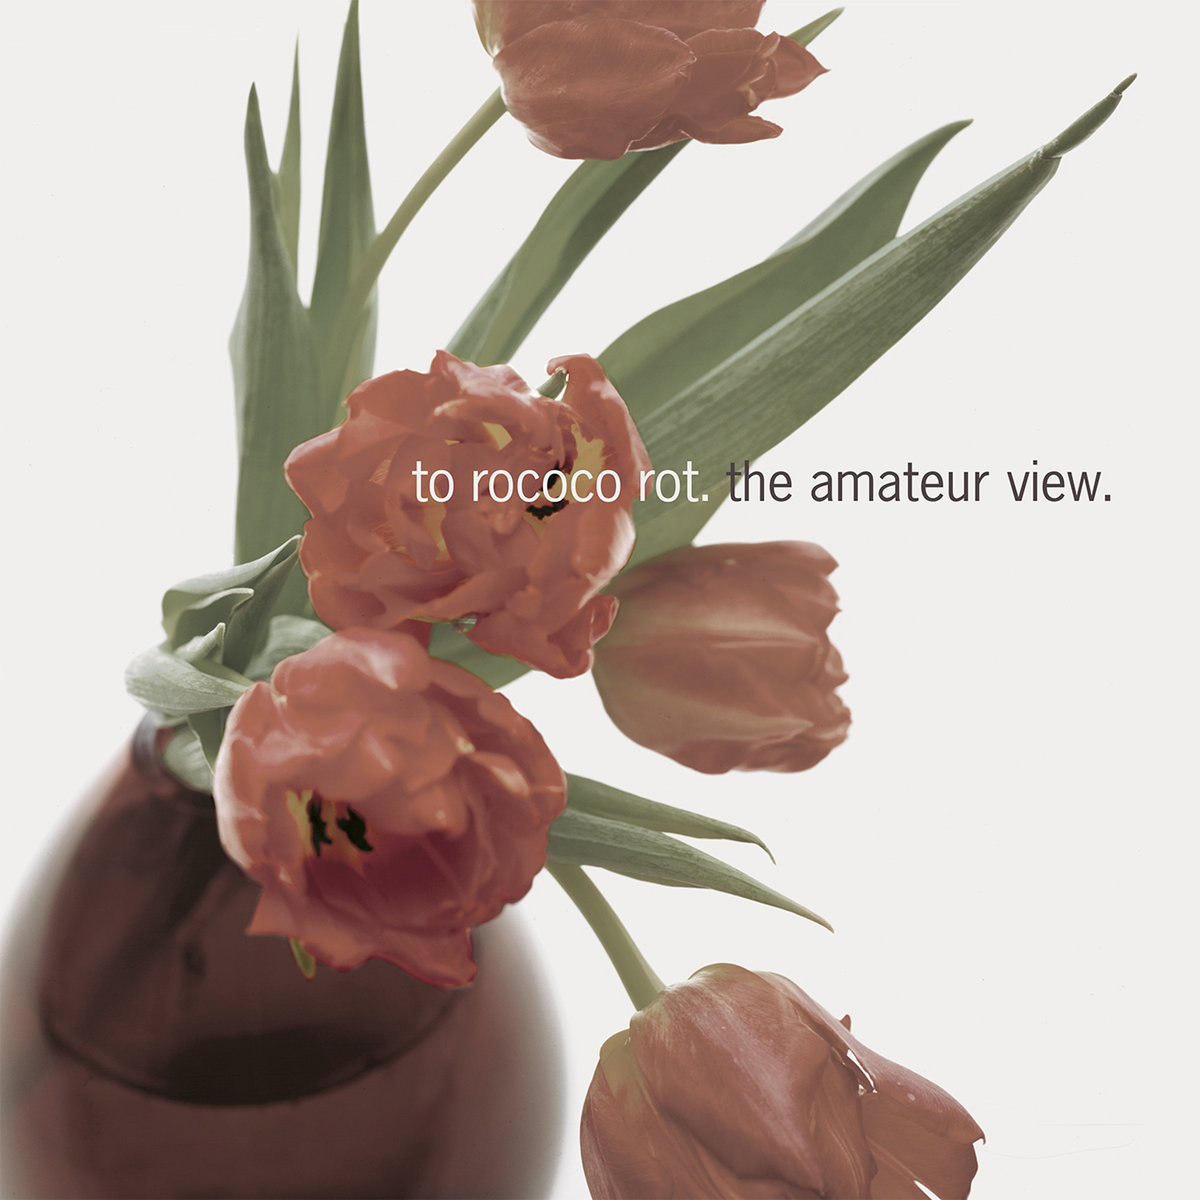 Amateur Photos the amateur view | to rococo rot